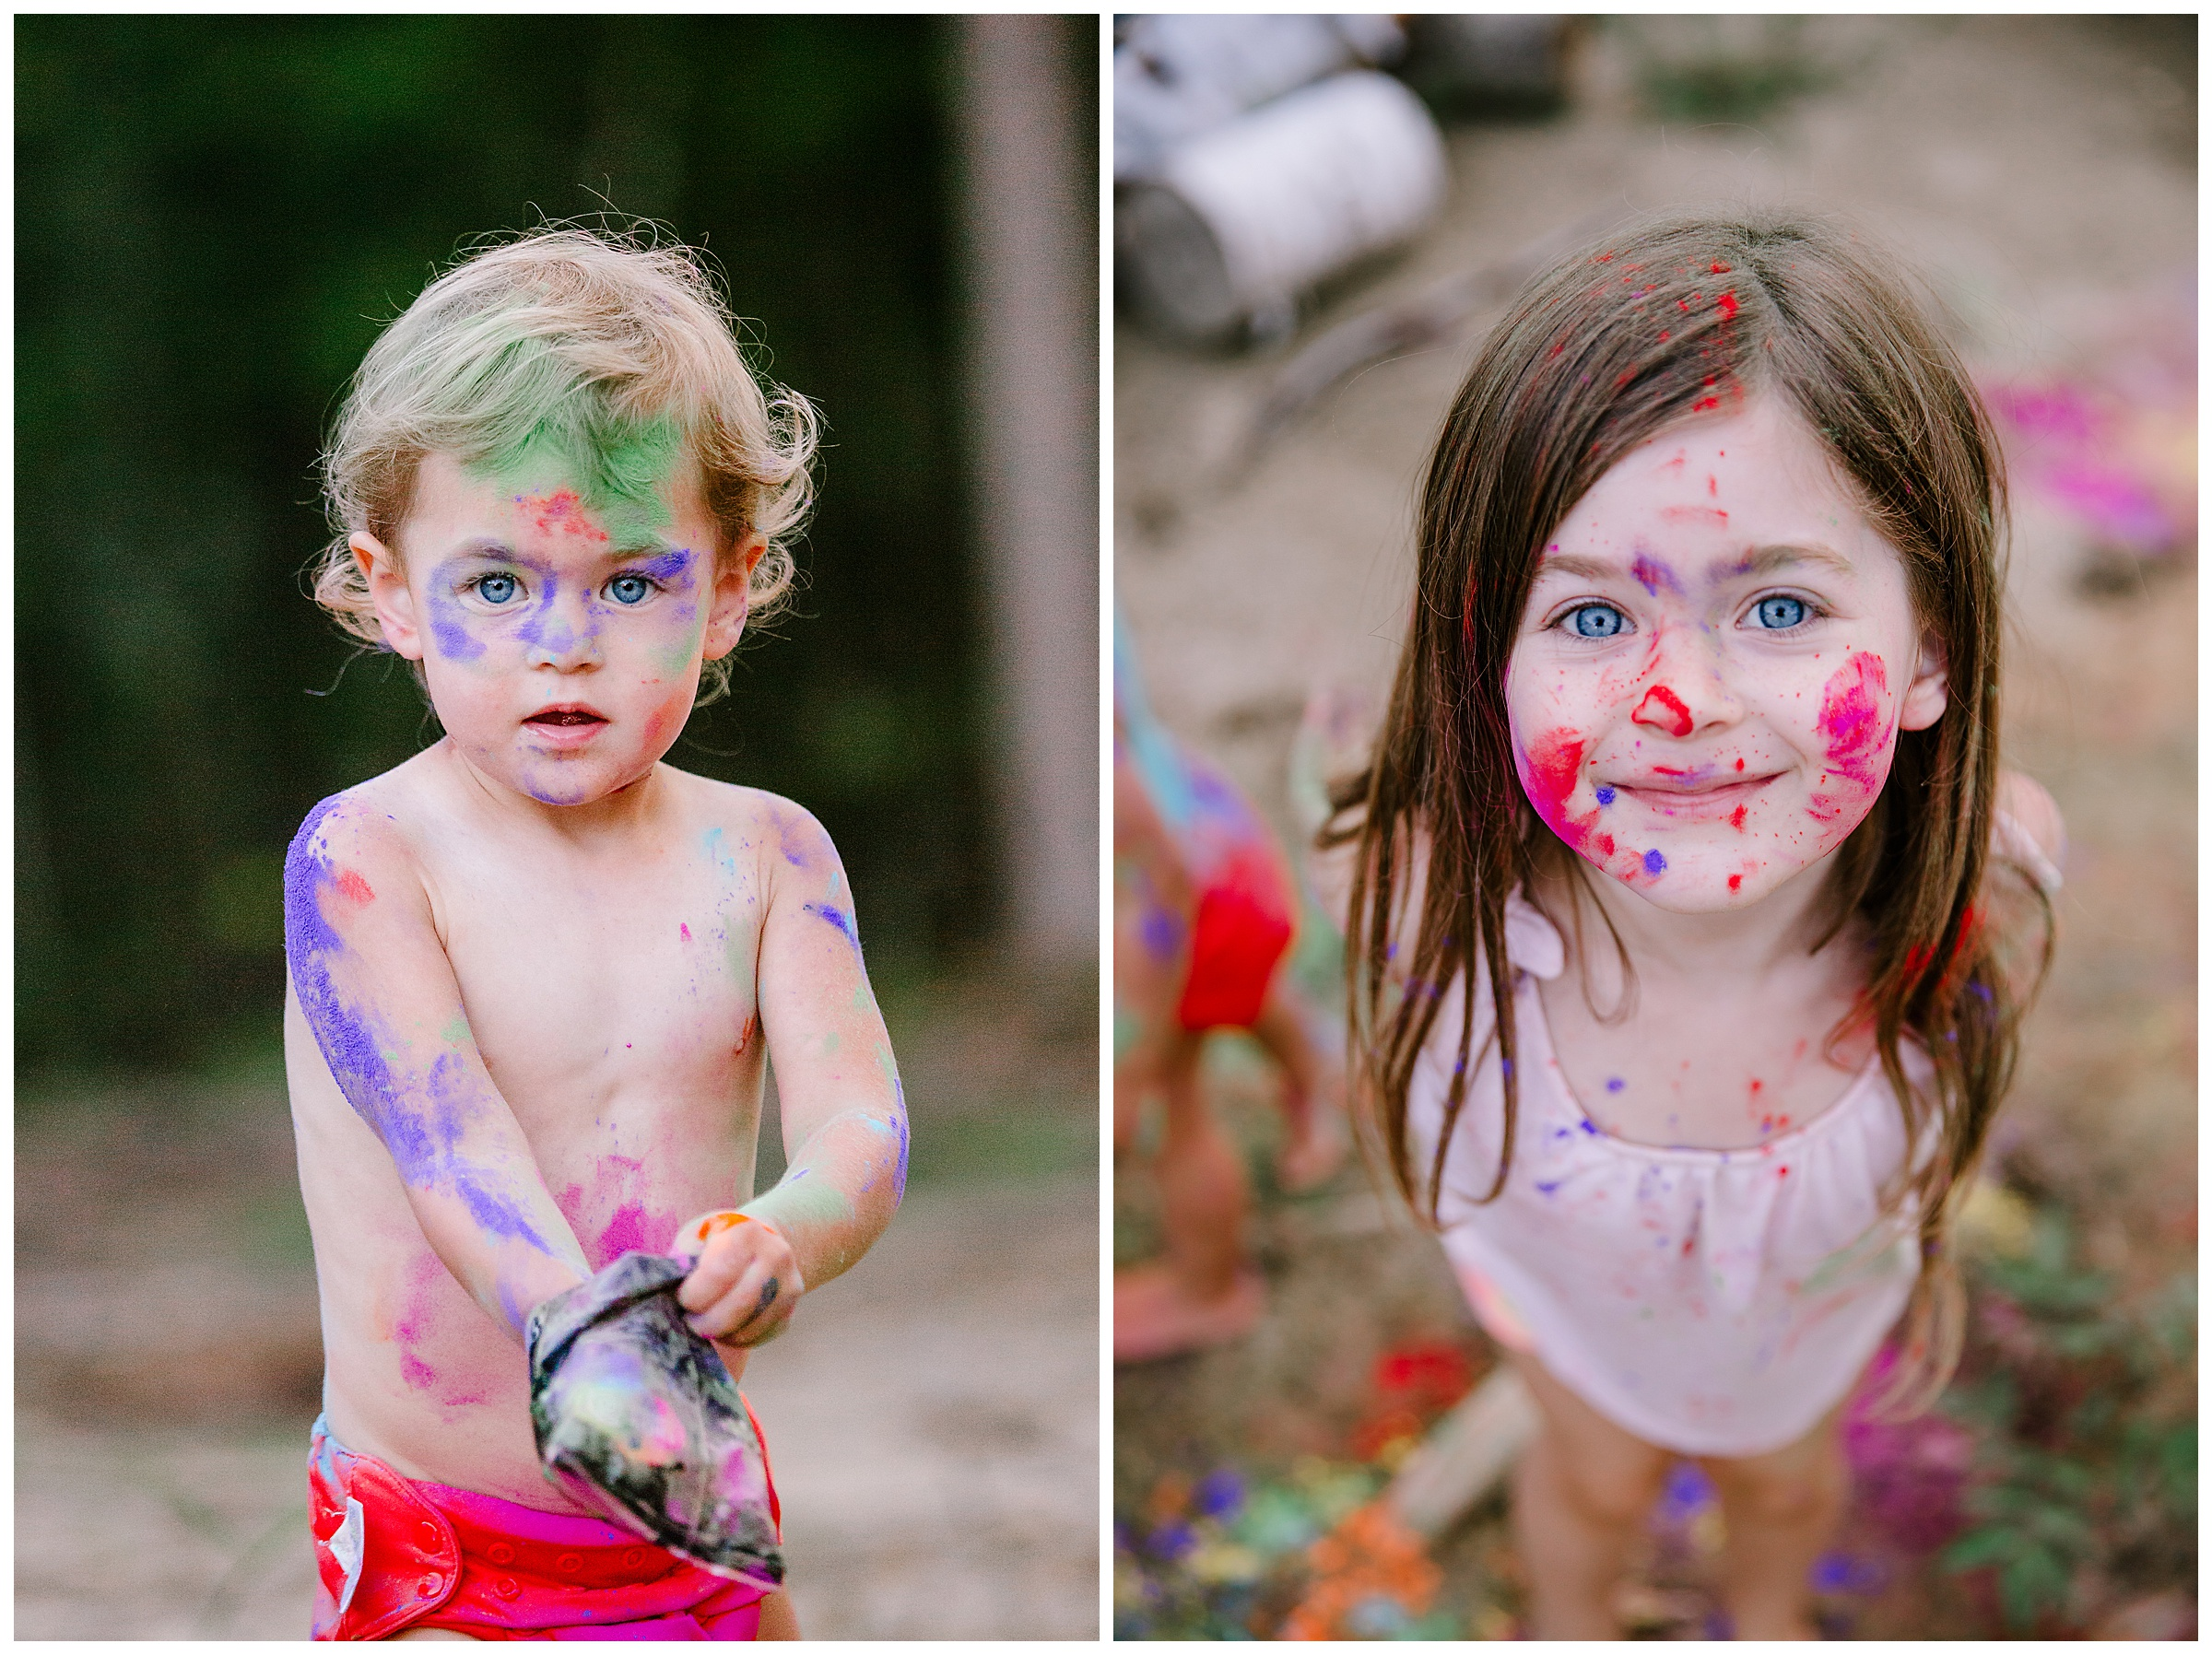 Aug,August,BLM,Brianna Morrissey,Brie Morrissey,Candid,Duffy Family,Duffy-Family-Painting,Family Photography,Family Portraits,Lifestyle,Lifestyle Family Photography,Martha Duffy,Natural Light,Nick Duffy,Outdoor Photography,Photo,Photographer,Photography,Wild Child,painting,www.blmphoto.com/contact,©BLM Photography 2019,